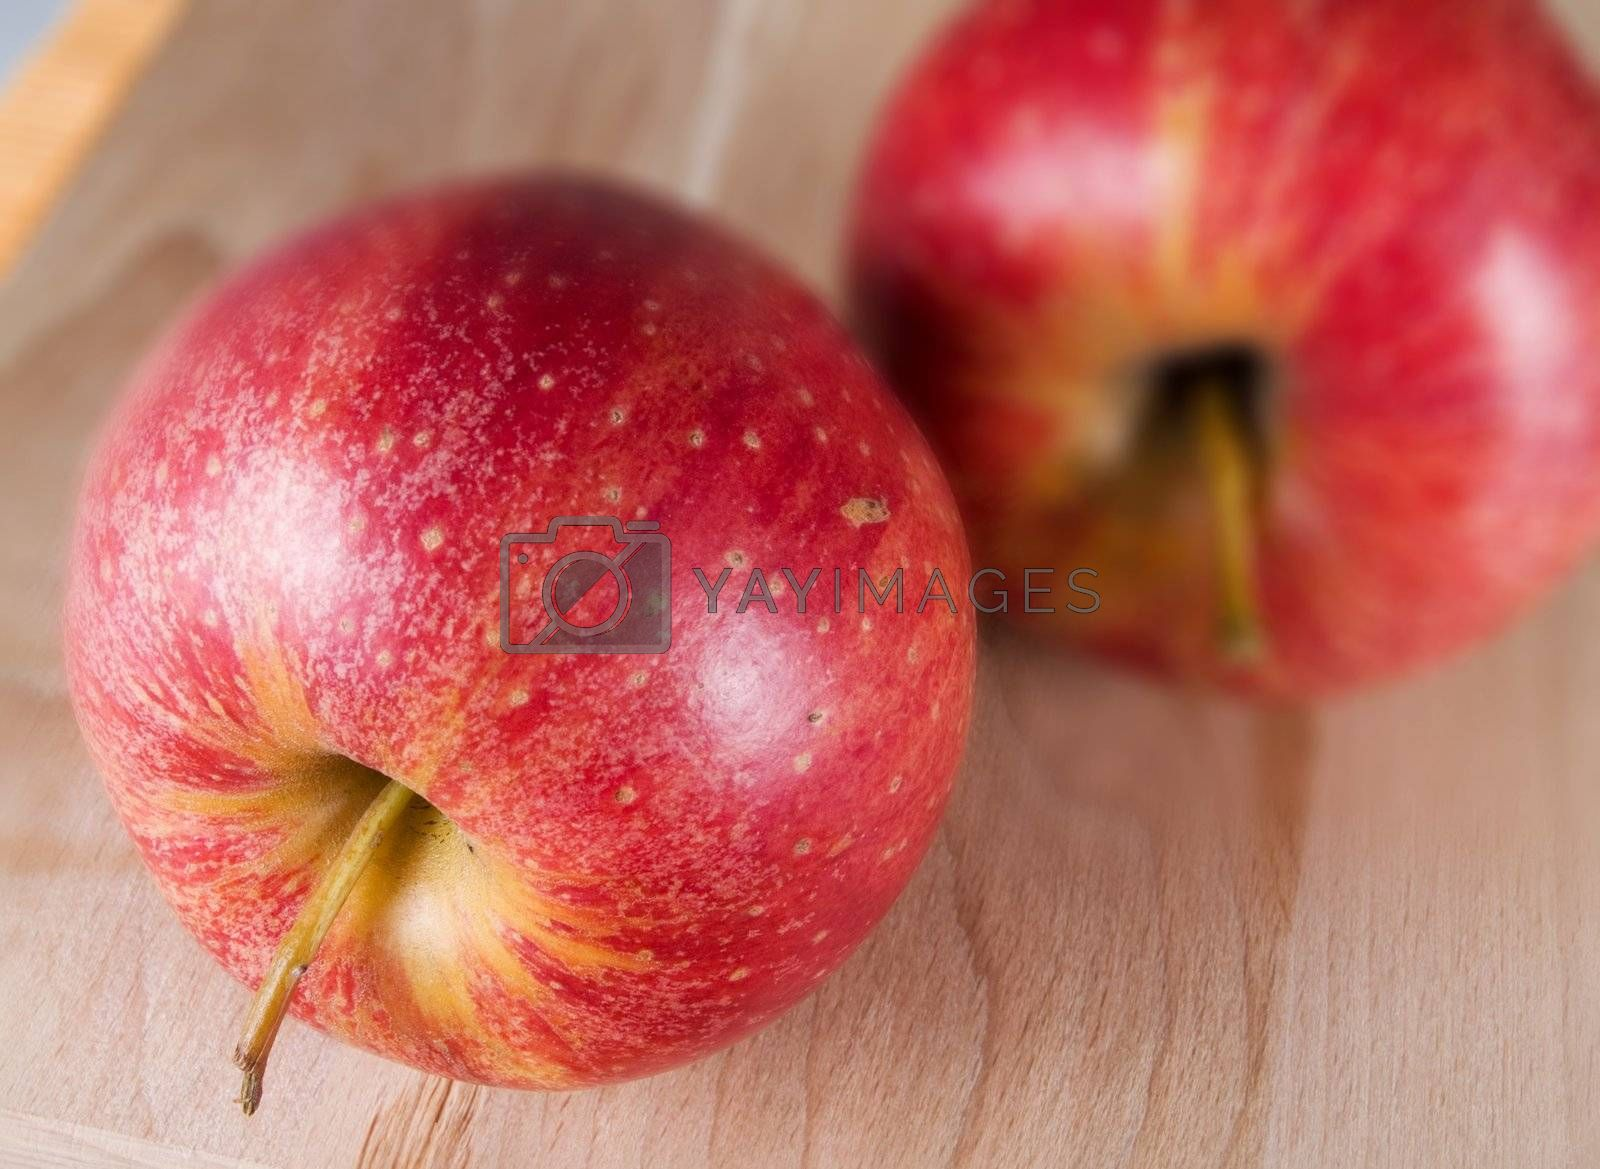 Red apples in a kitchen